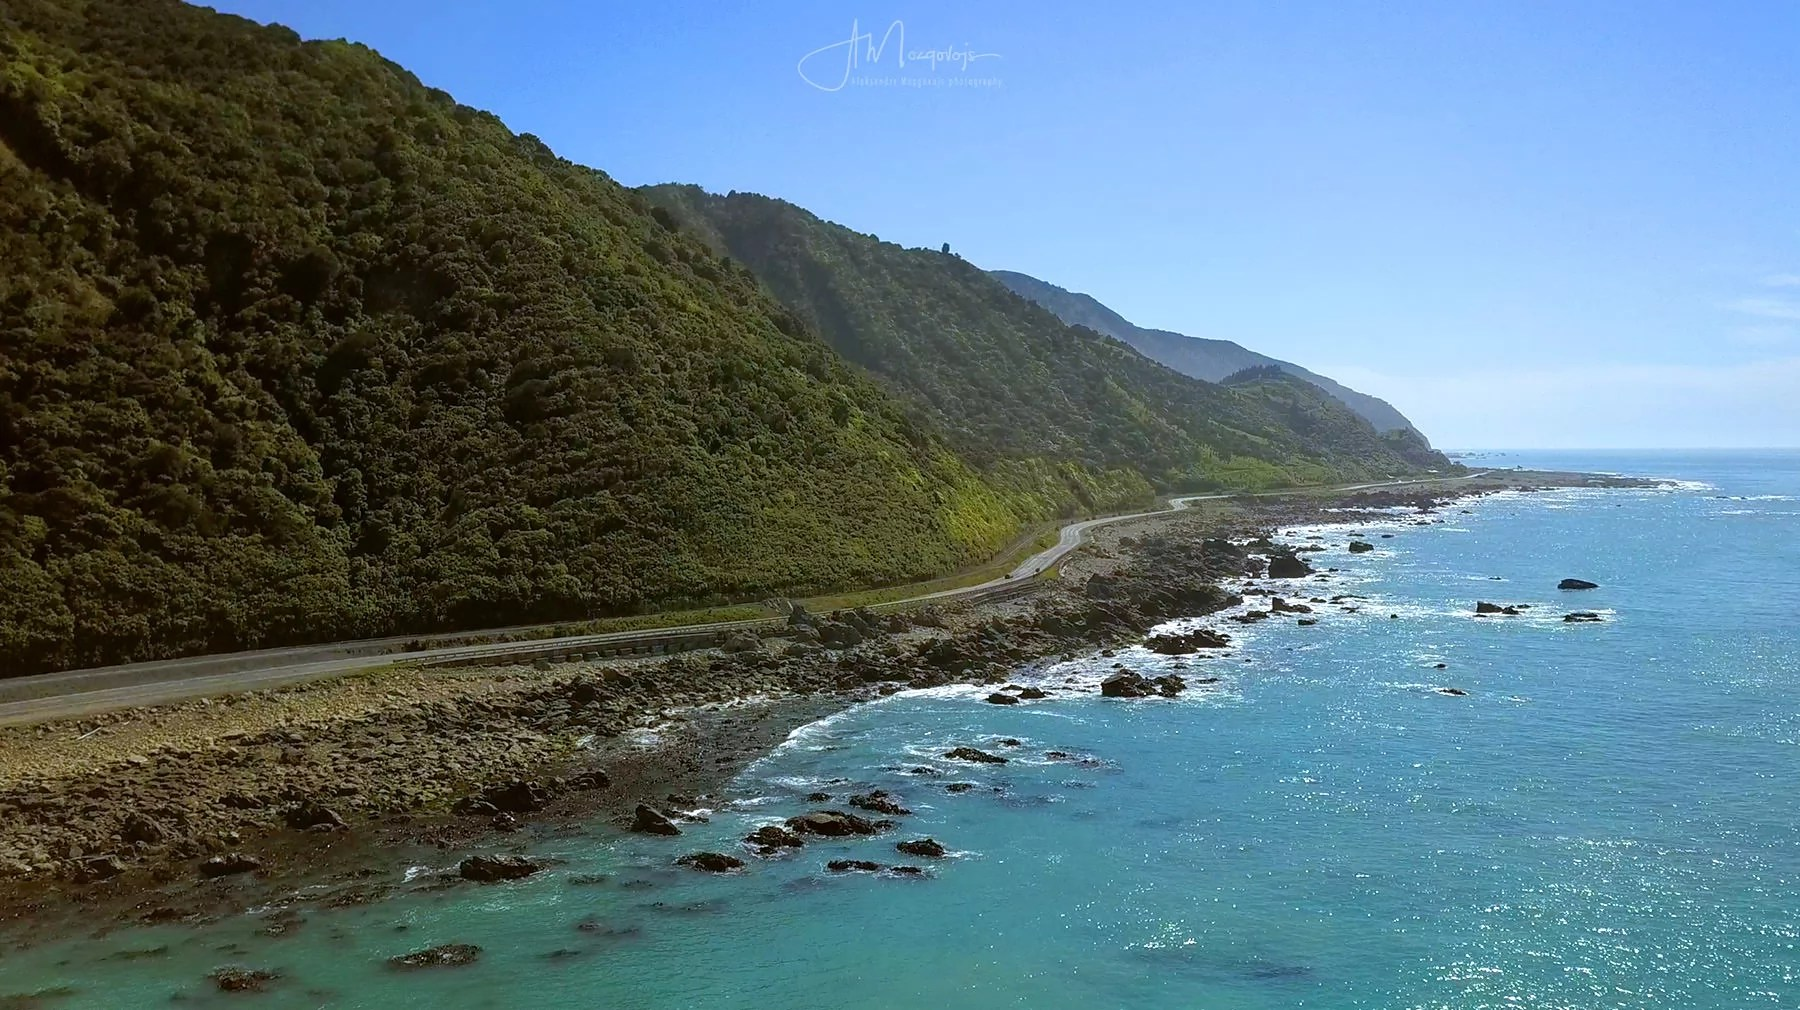 Road north of Kaikoura